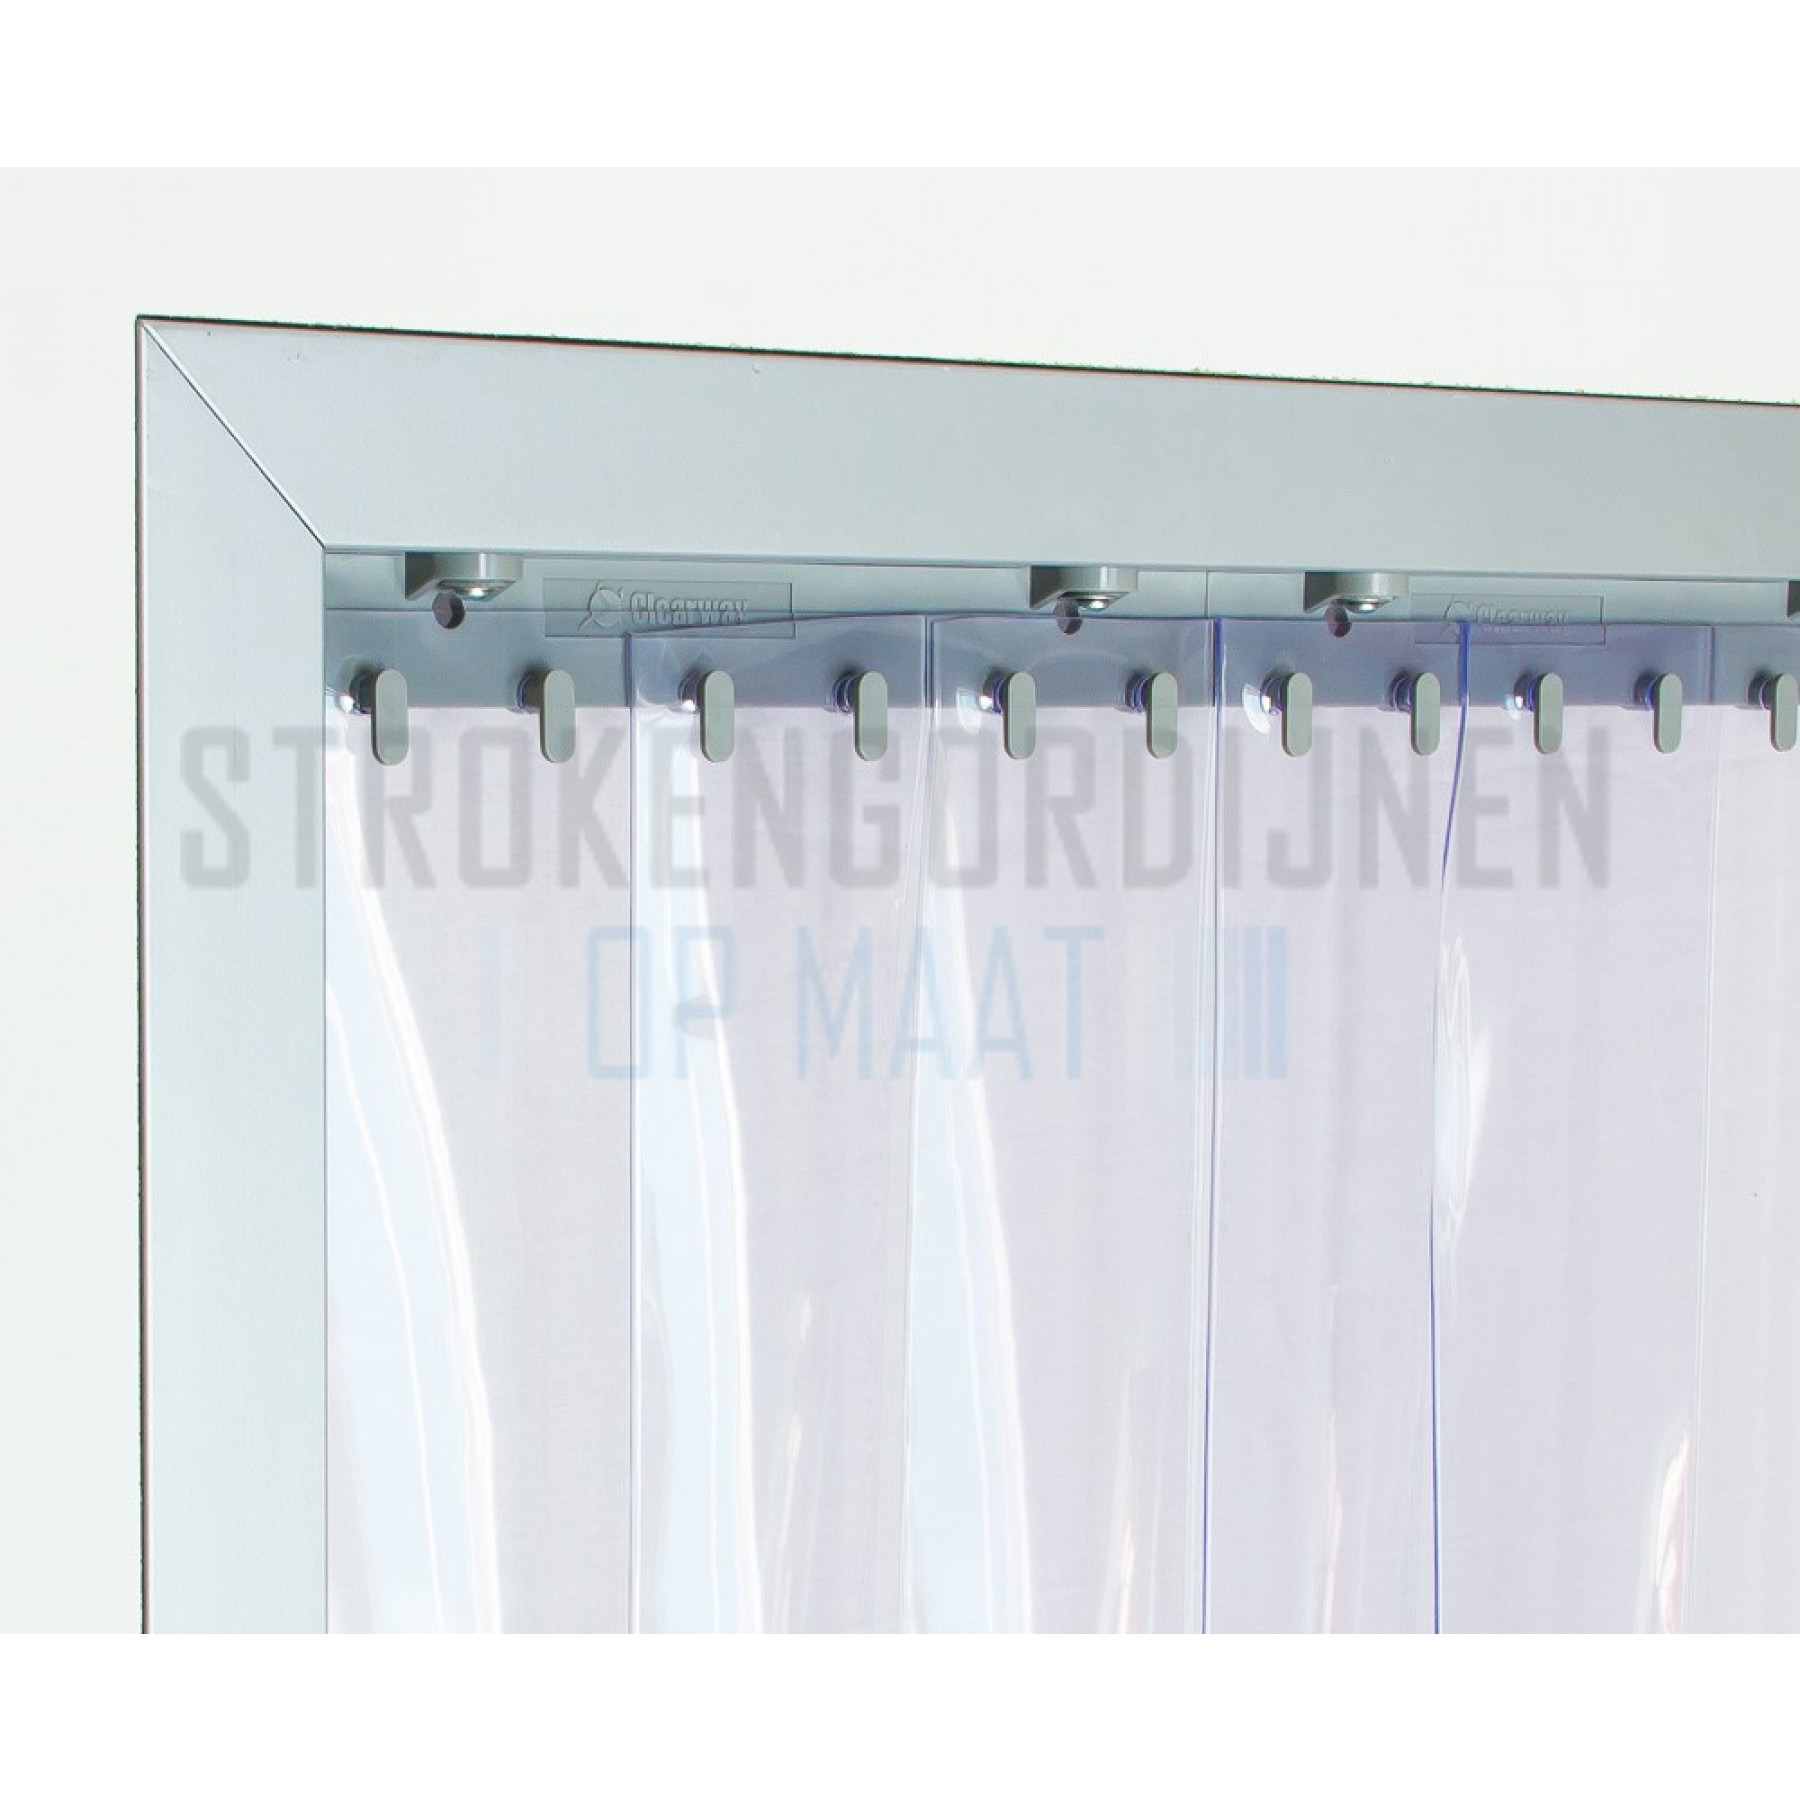 PVC stroken op maat, 200mm breed, 2mm dik, transparant